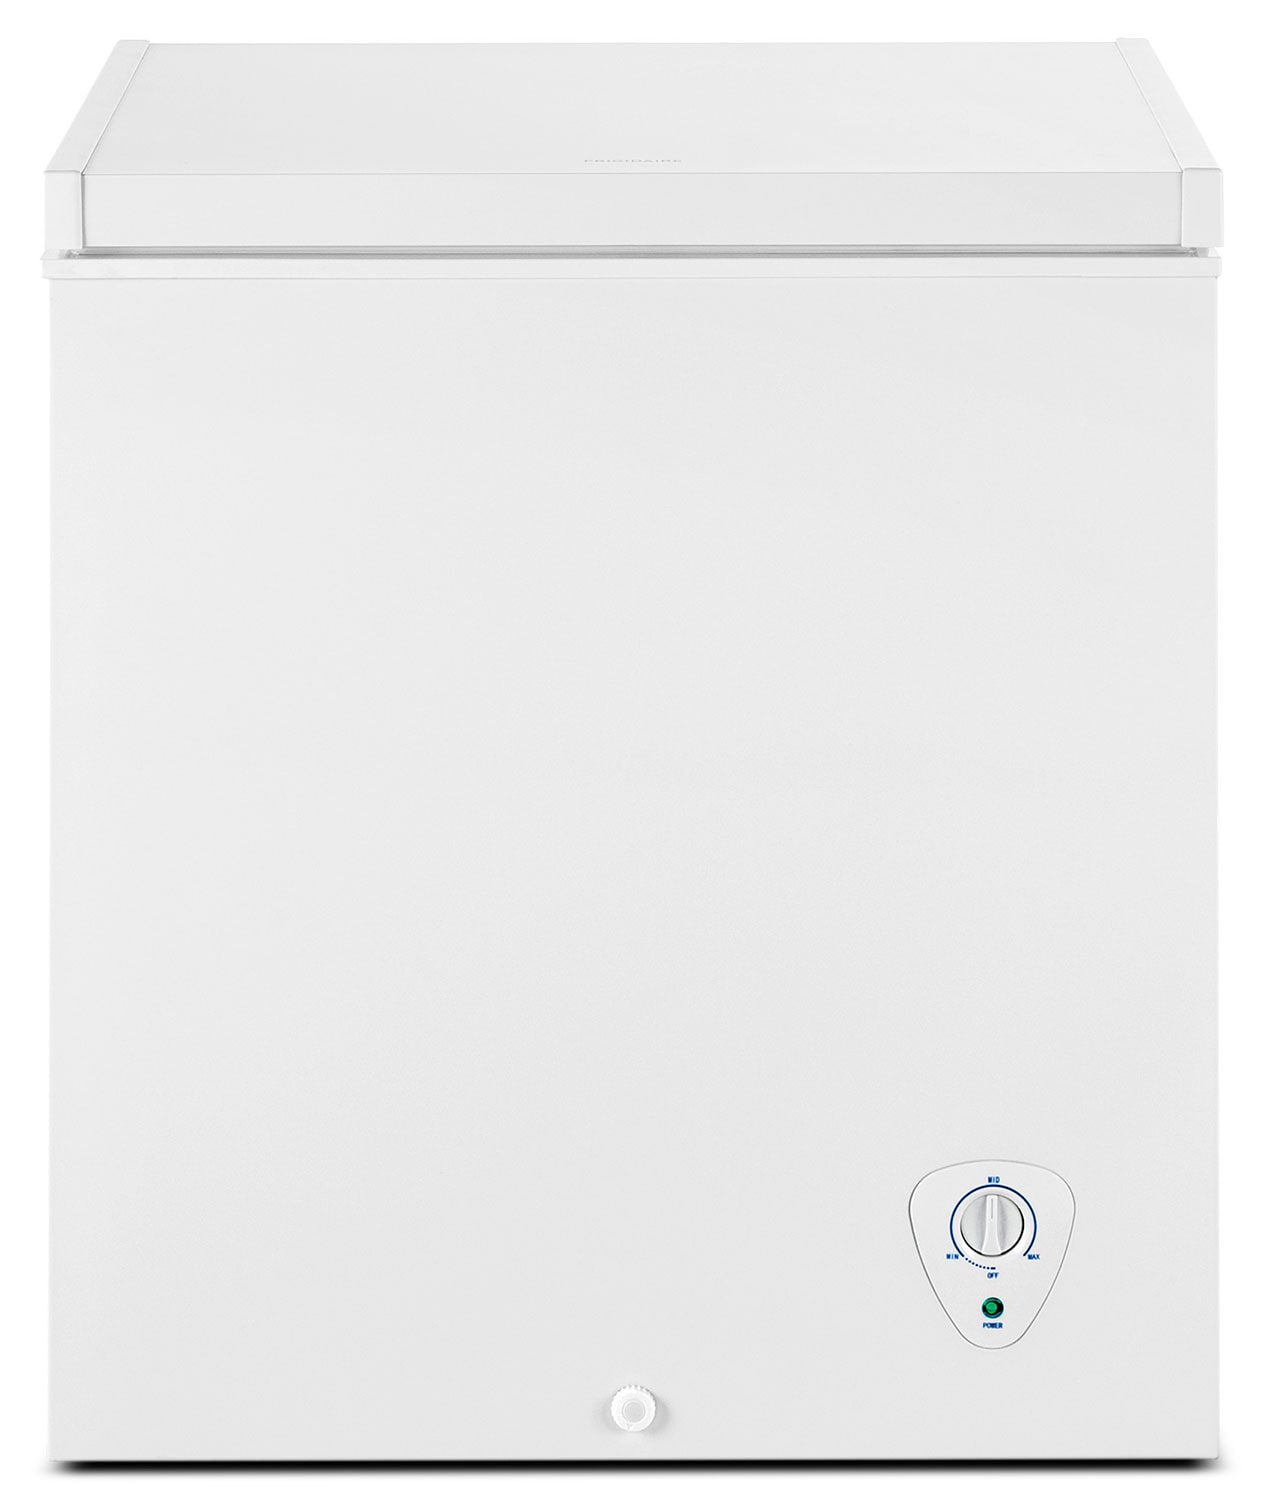 Refrigerators and Freezers - Frigidaire White Chest Freezer (5.0 Cu. Ft.) - FFFC05M1QW